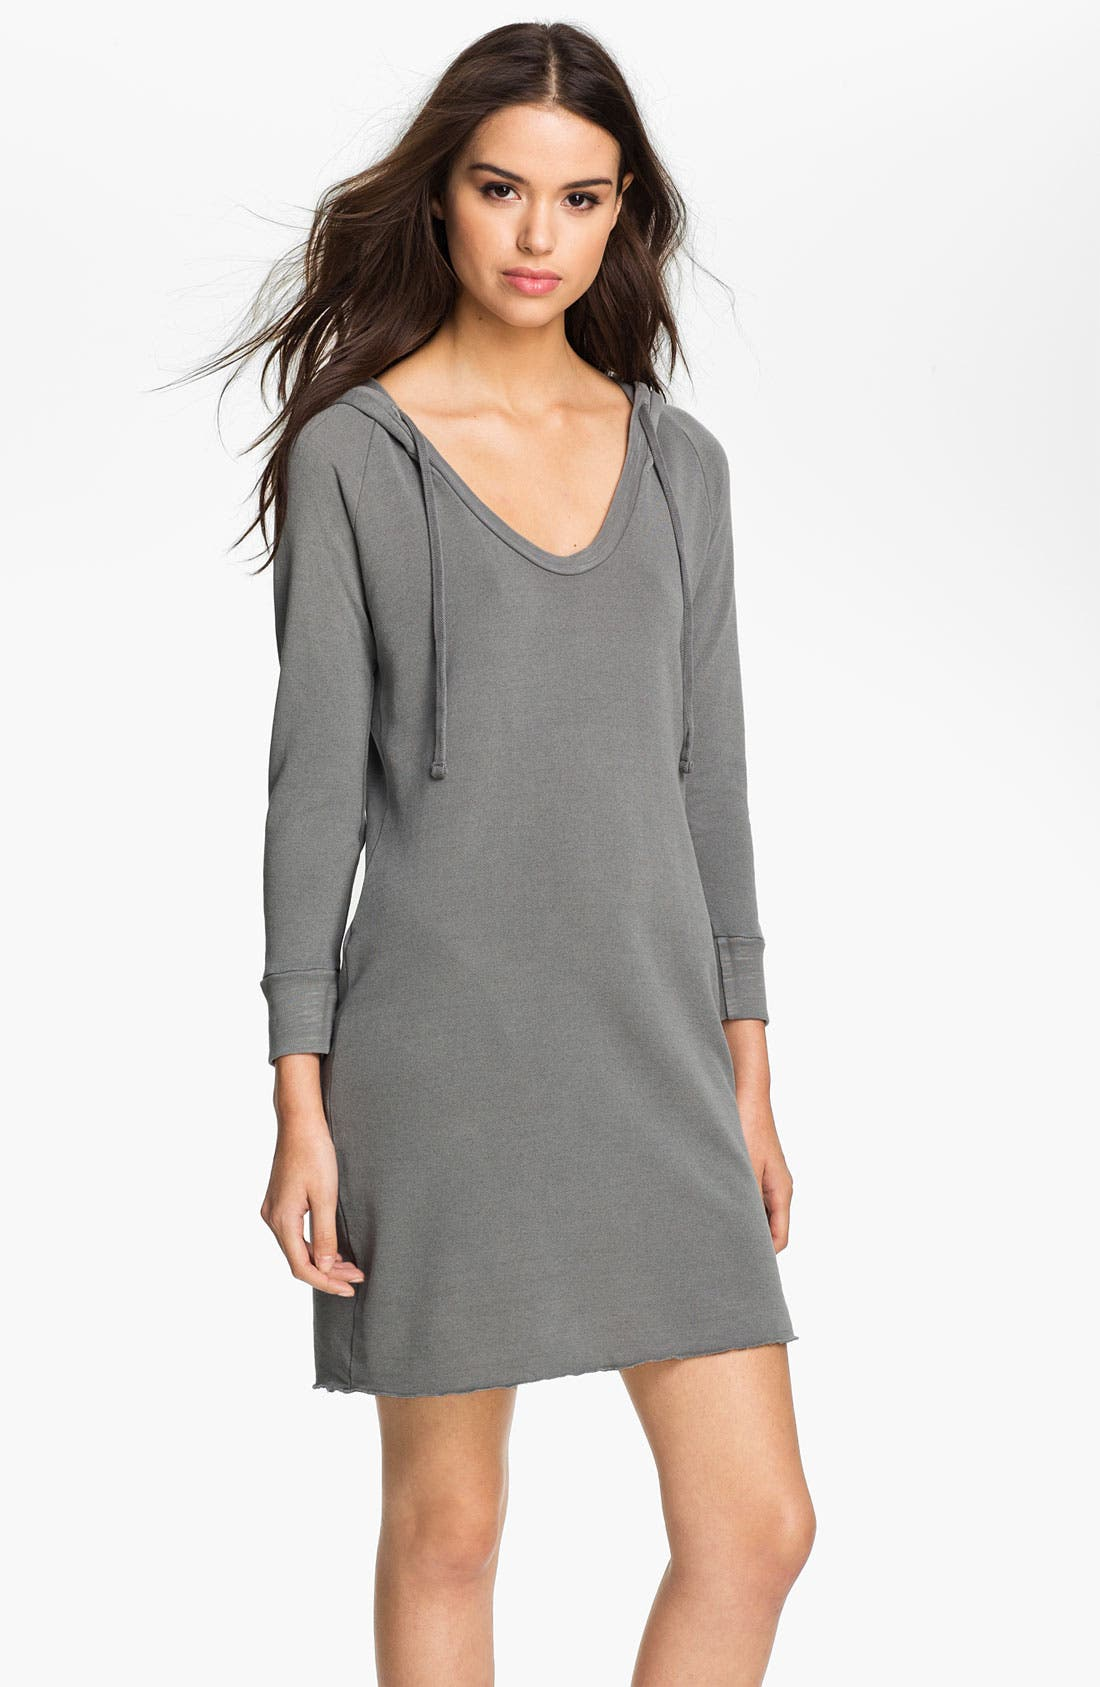 Alternate Image 1 Selected - James Perse Hooded Sweatshirt Dress